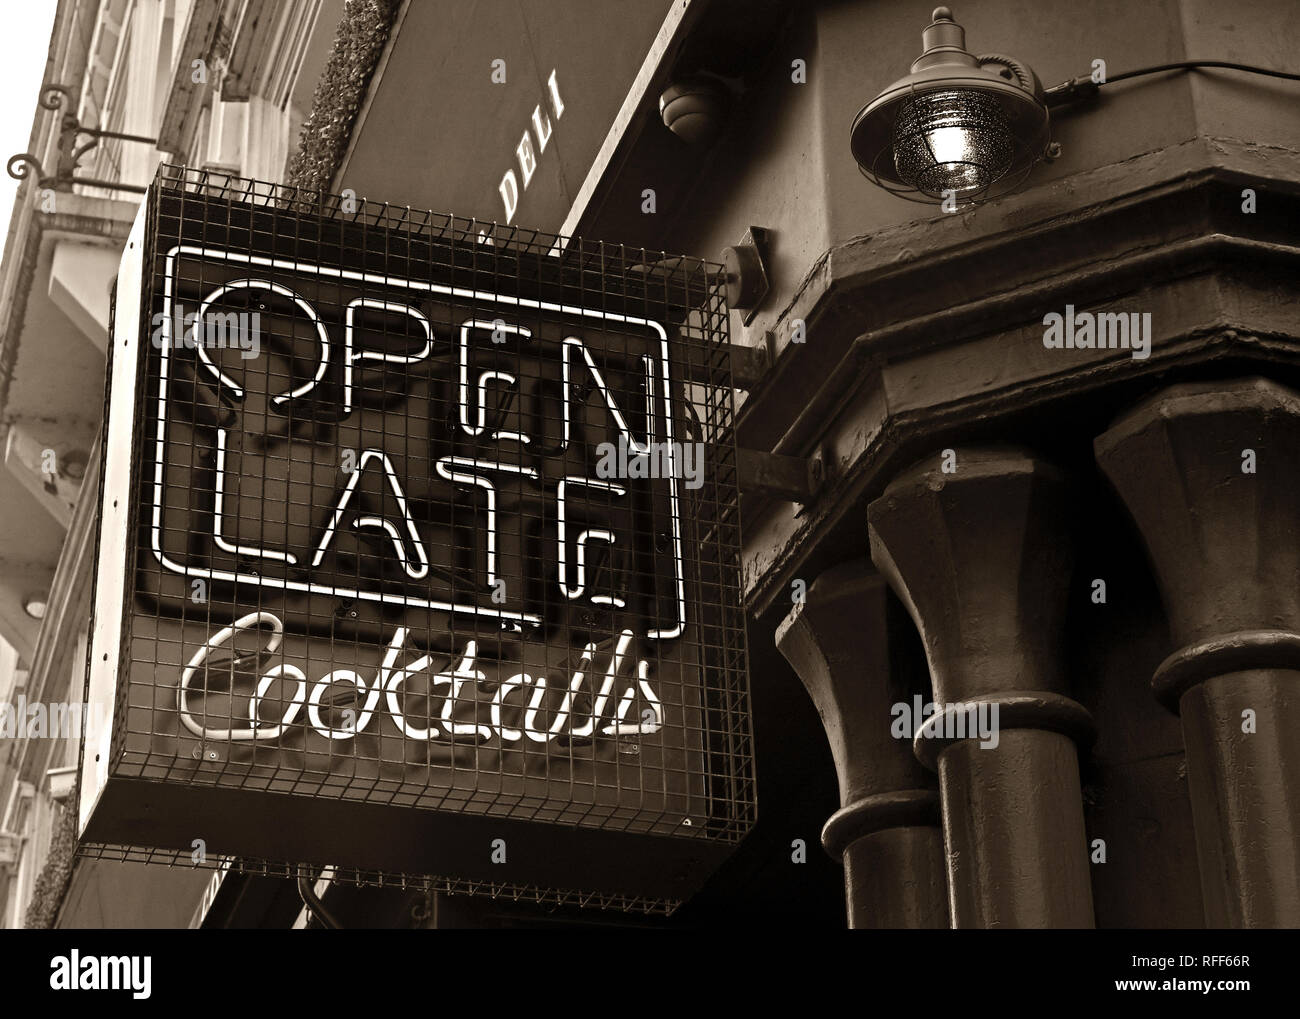 Monochrome Open Late for Cocktails, Cocktail bar neon sign, Stevenson Square, NorthernQuarter, Manchester, England, UK,  M1 1DN - Stock Image